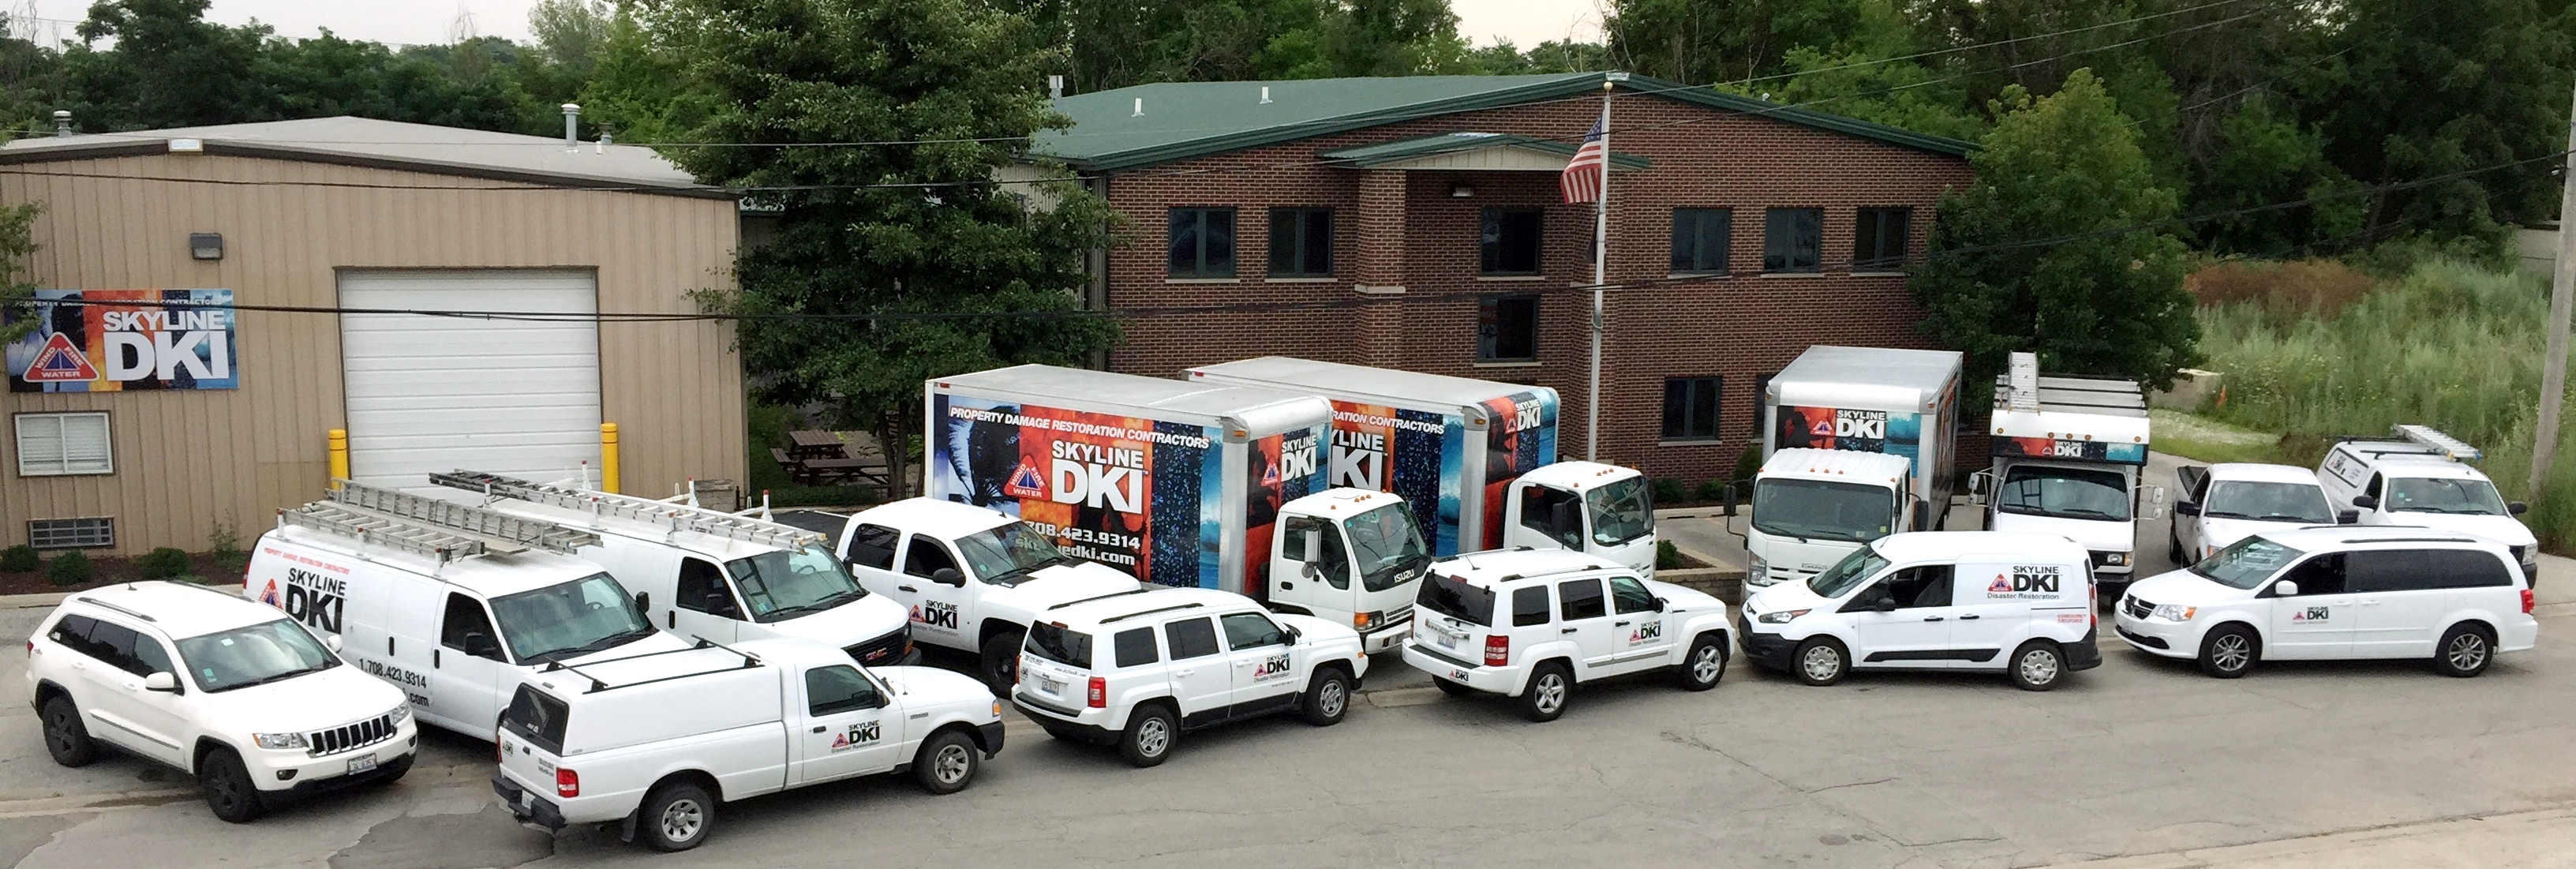 DKI fleet of service vans, trucks and cars out front of a DKI business location